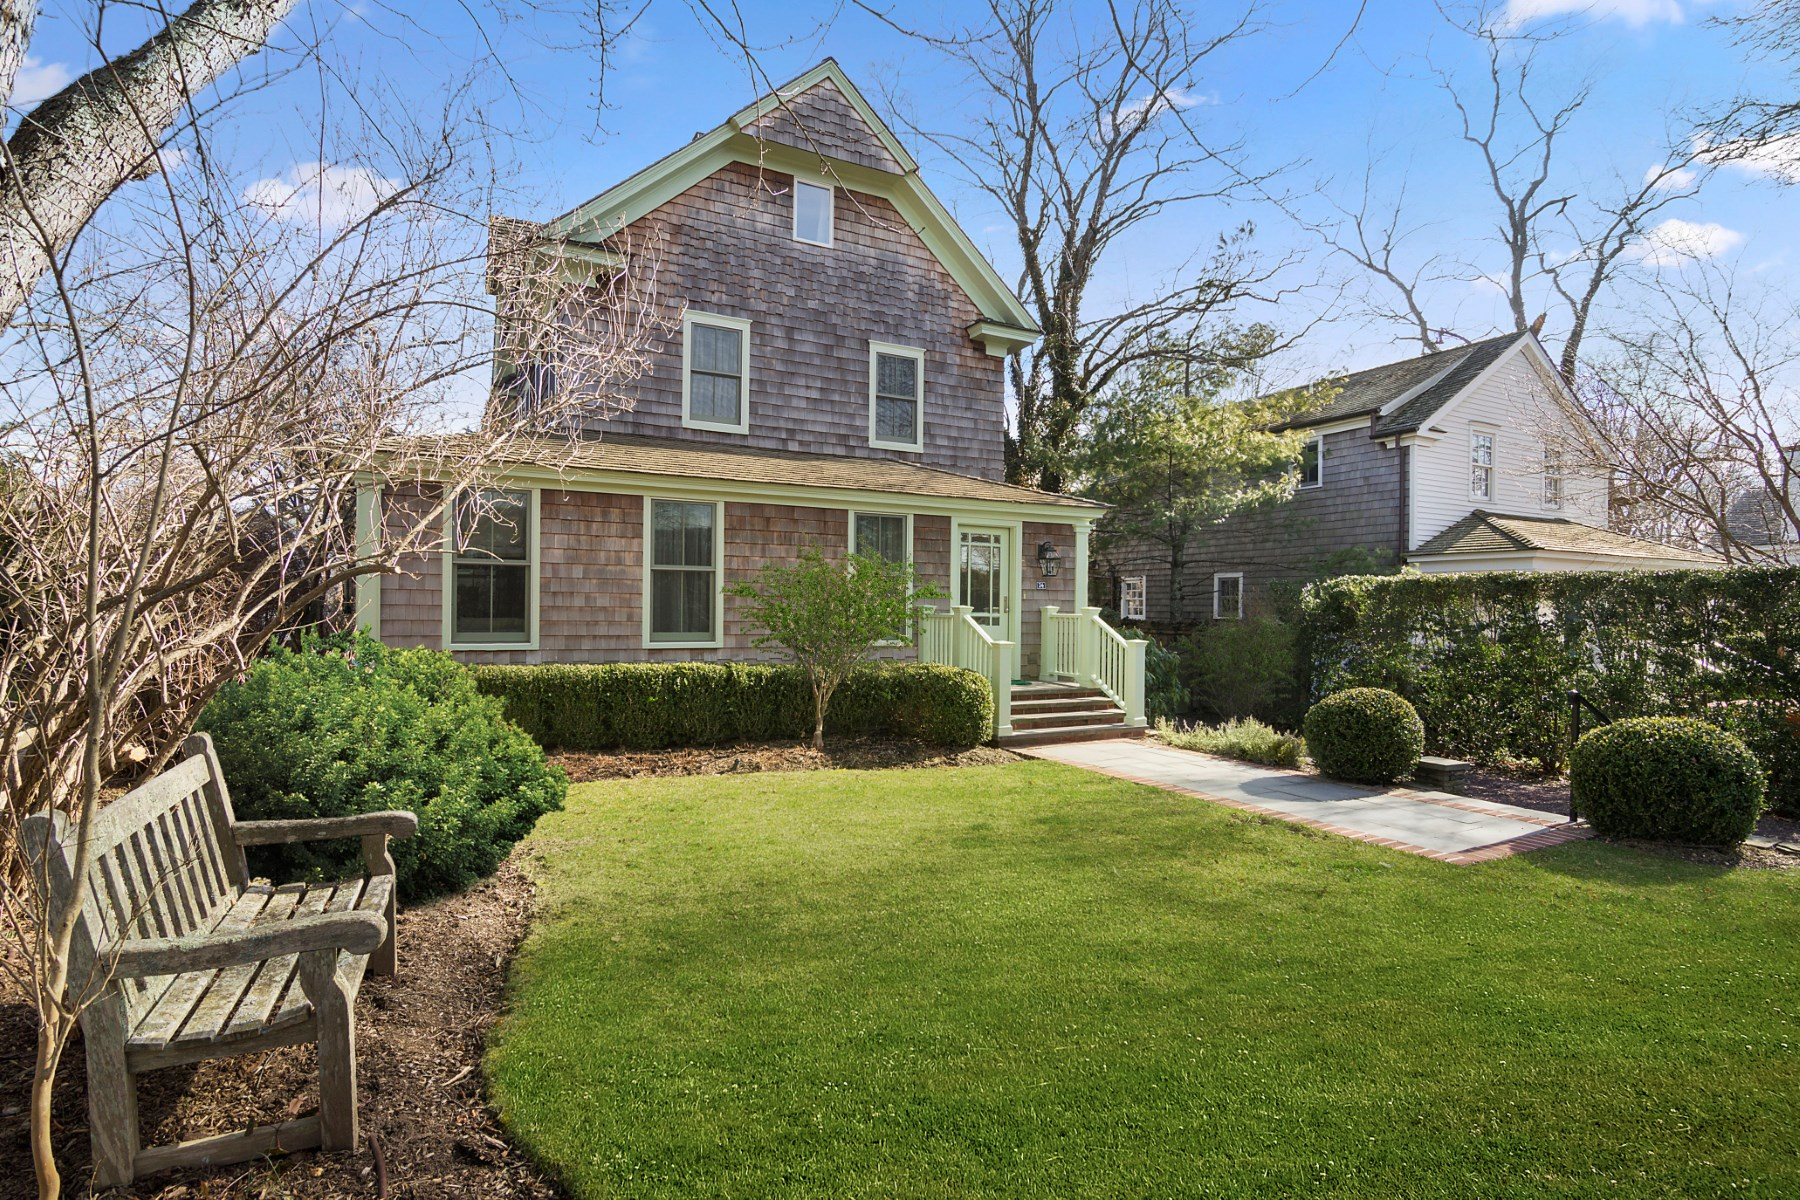 Single Family Home for Sale at Classic High Street 34 High Street Sag Harbor Village, Sag Harbor, New York, 11963 United States